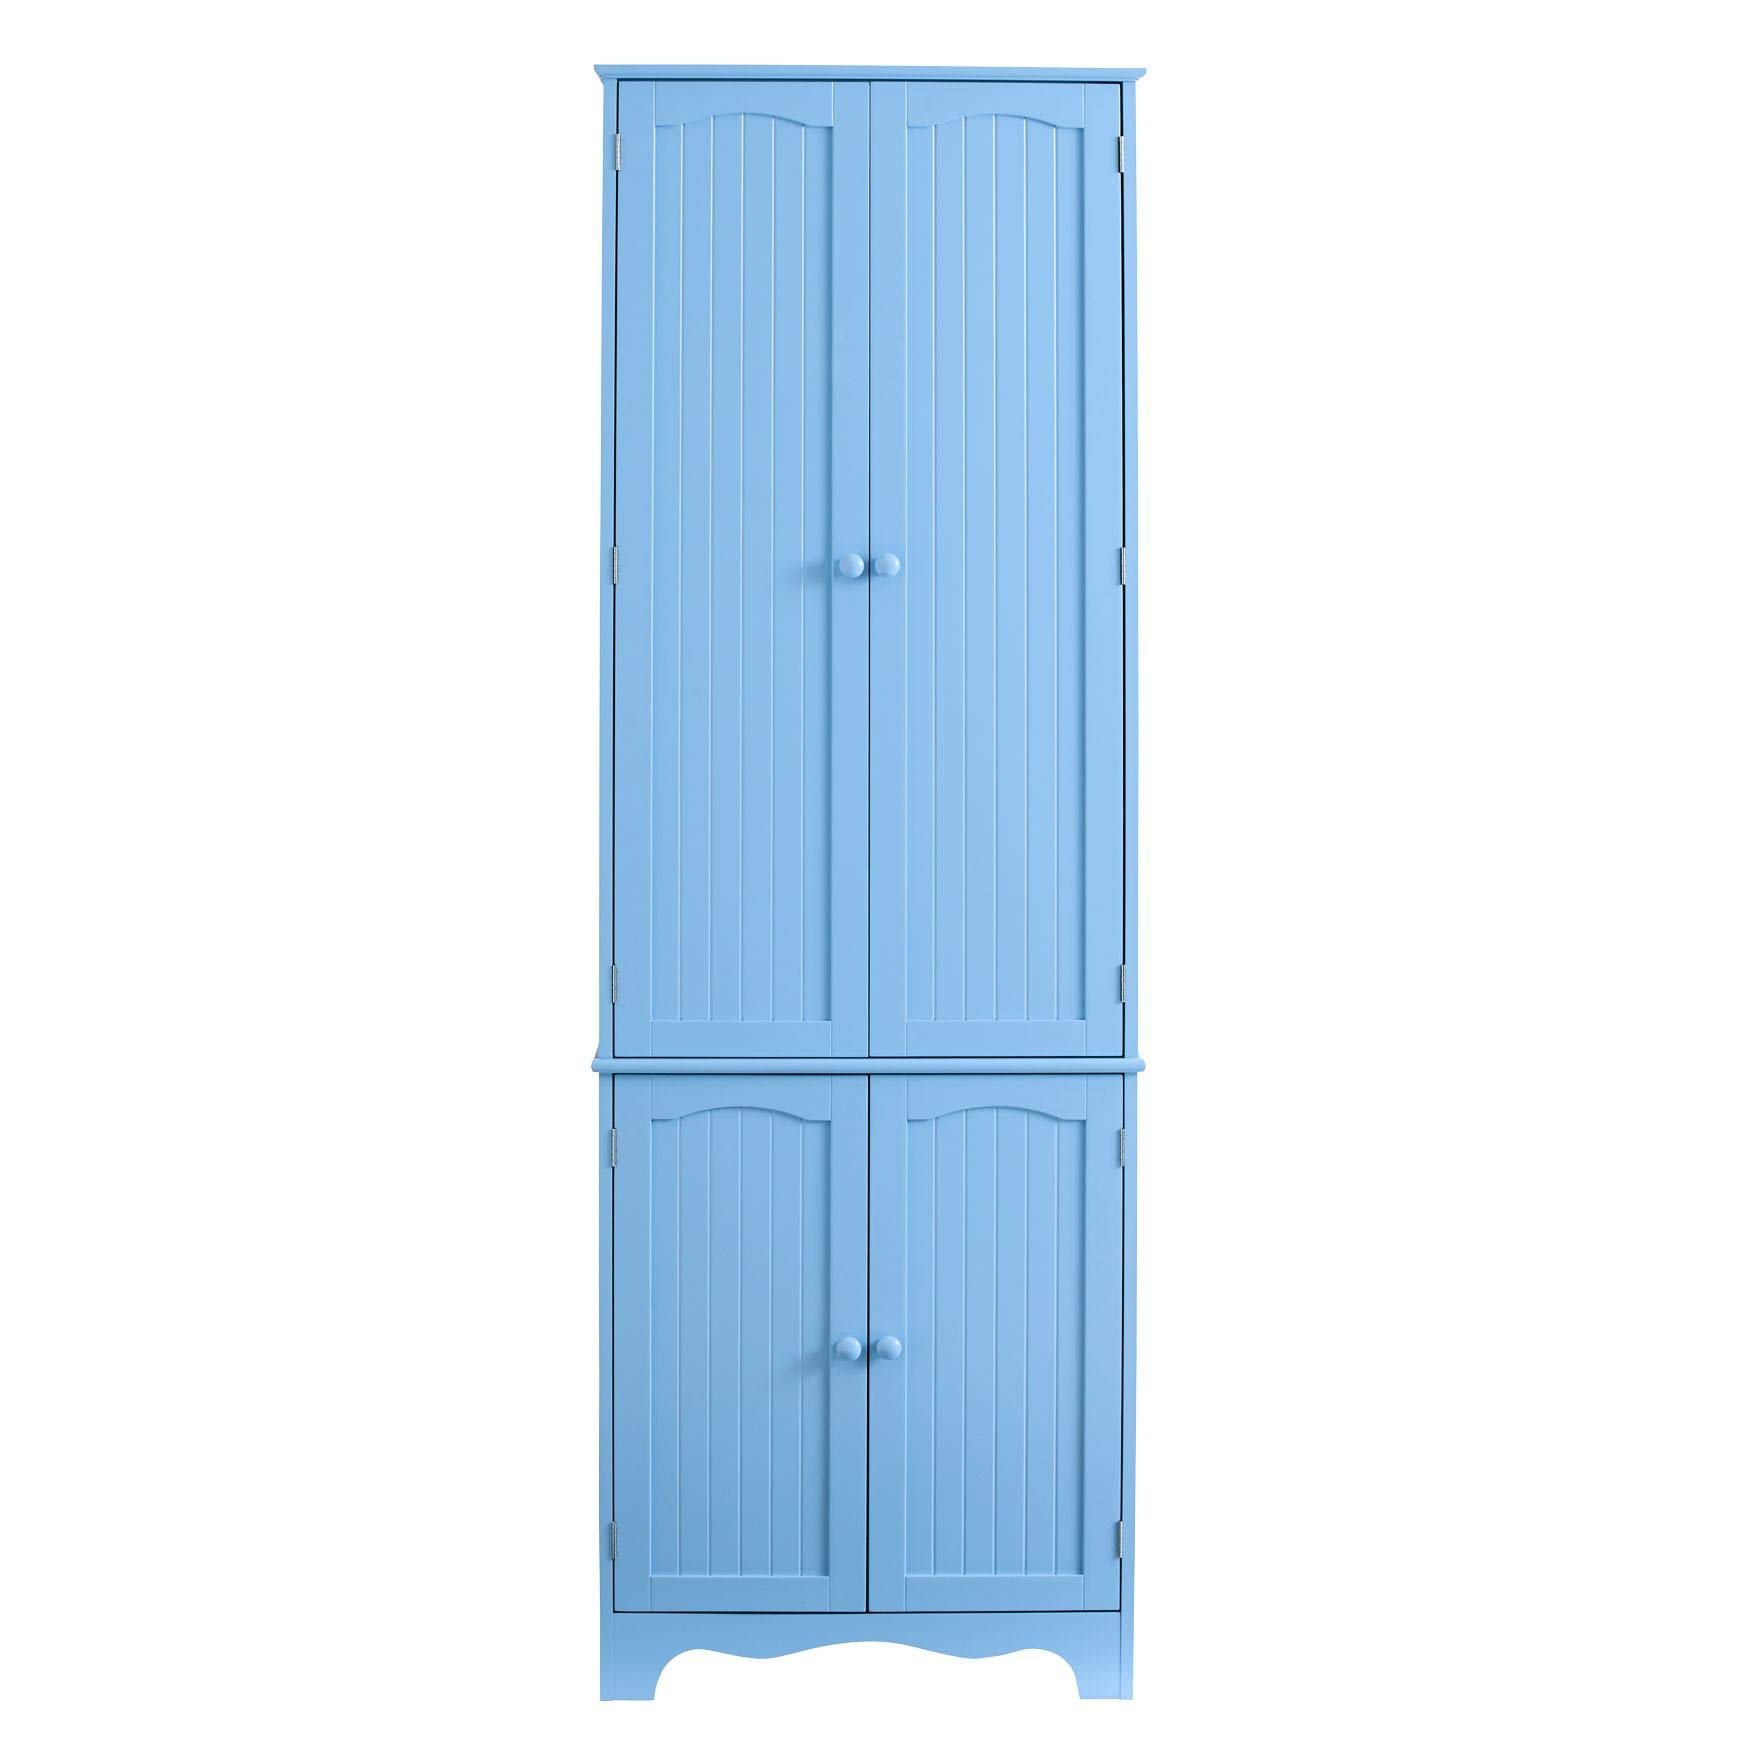 BrylaneHome Cottage Kitchen Tall Pantry Cabinet - Light Blue